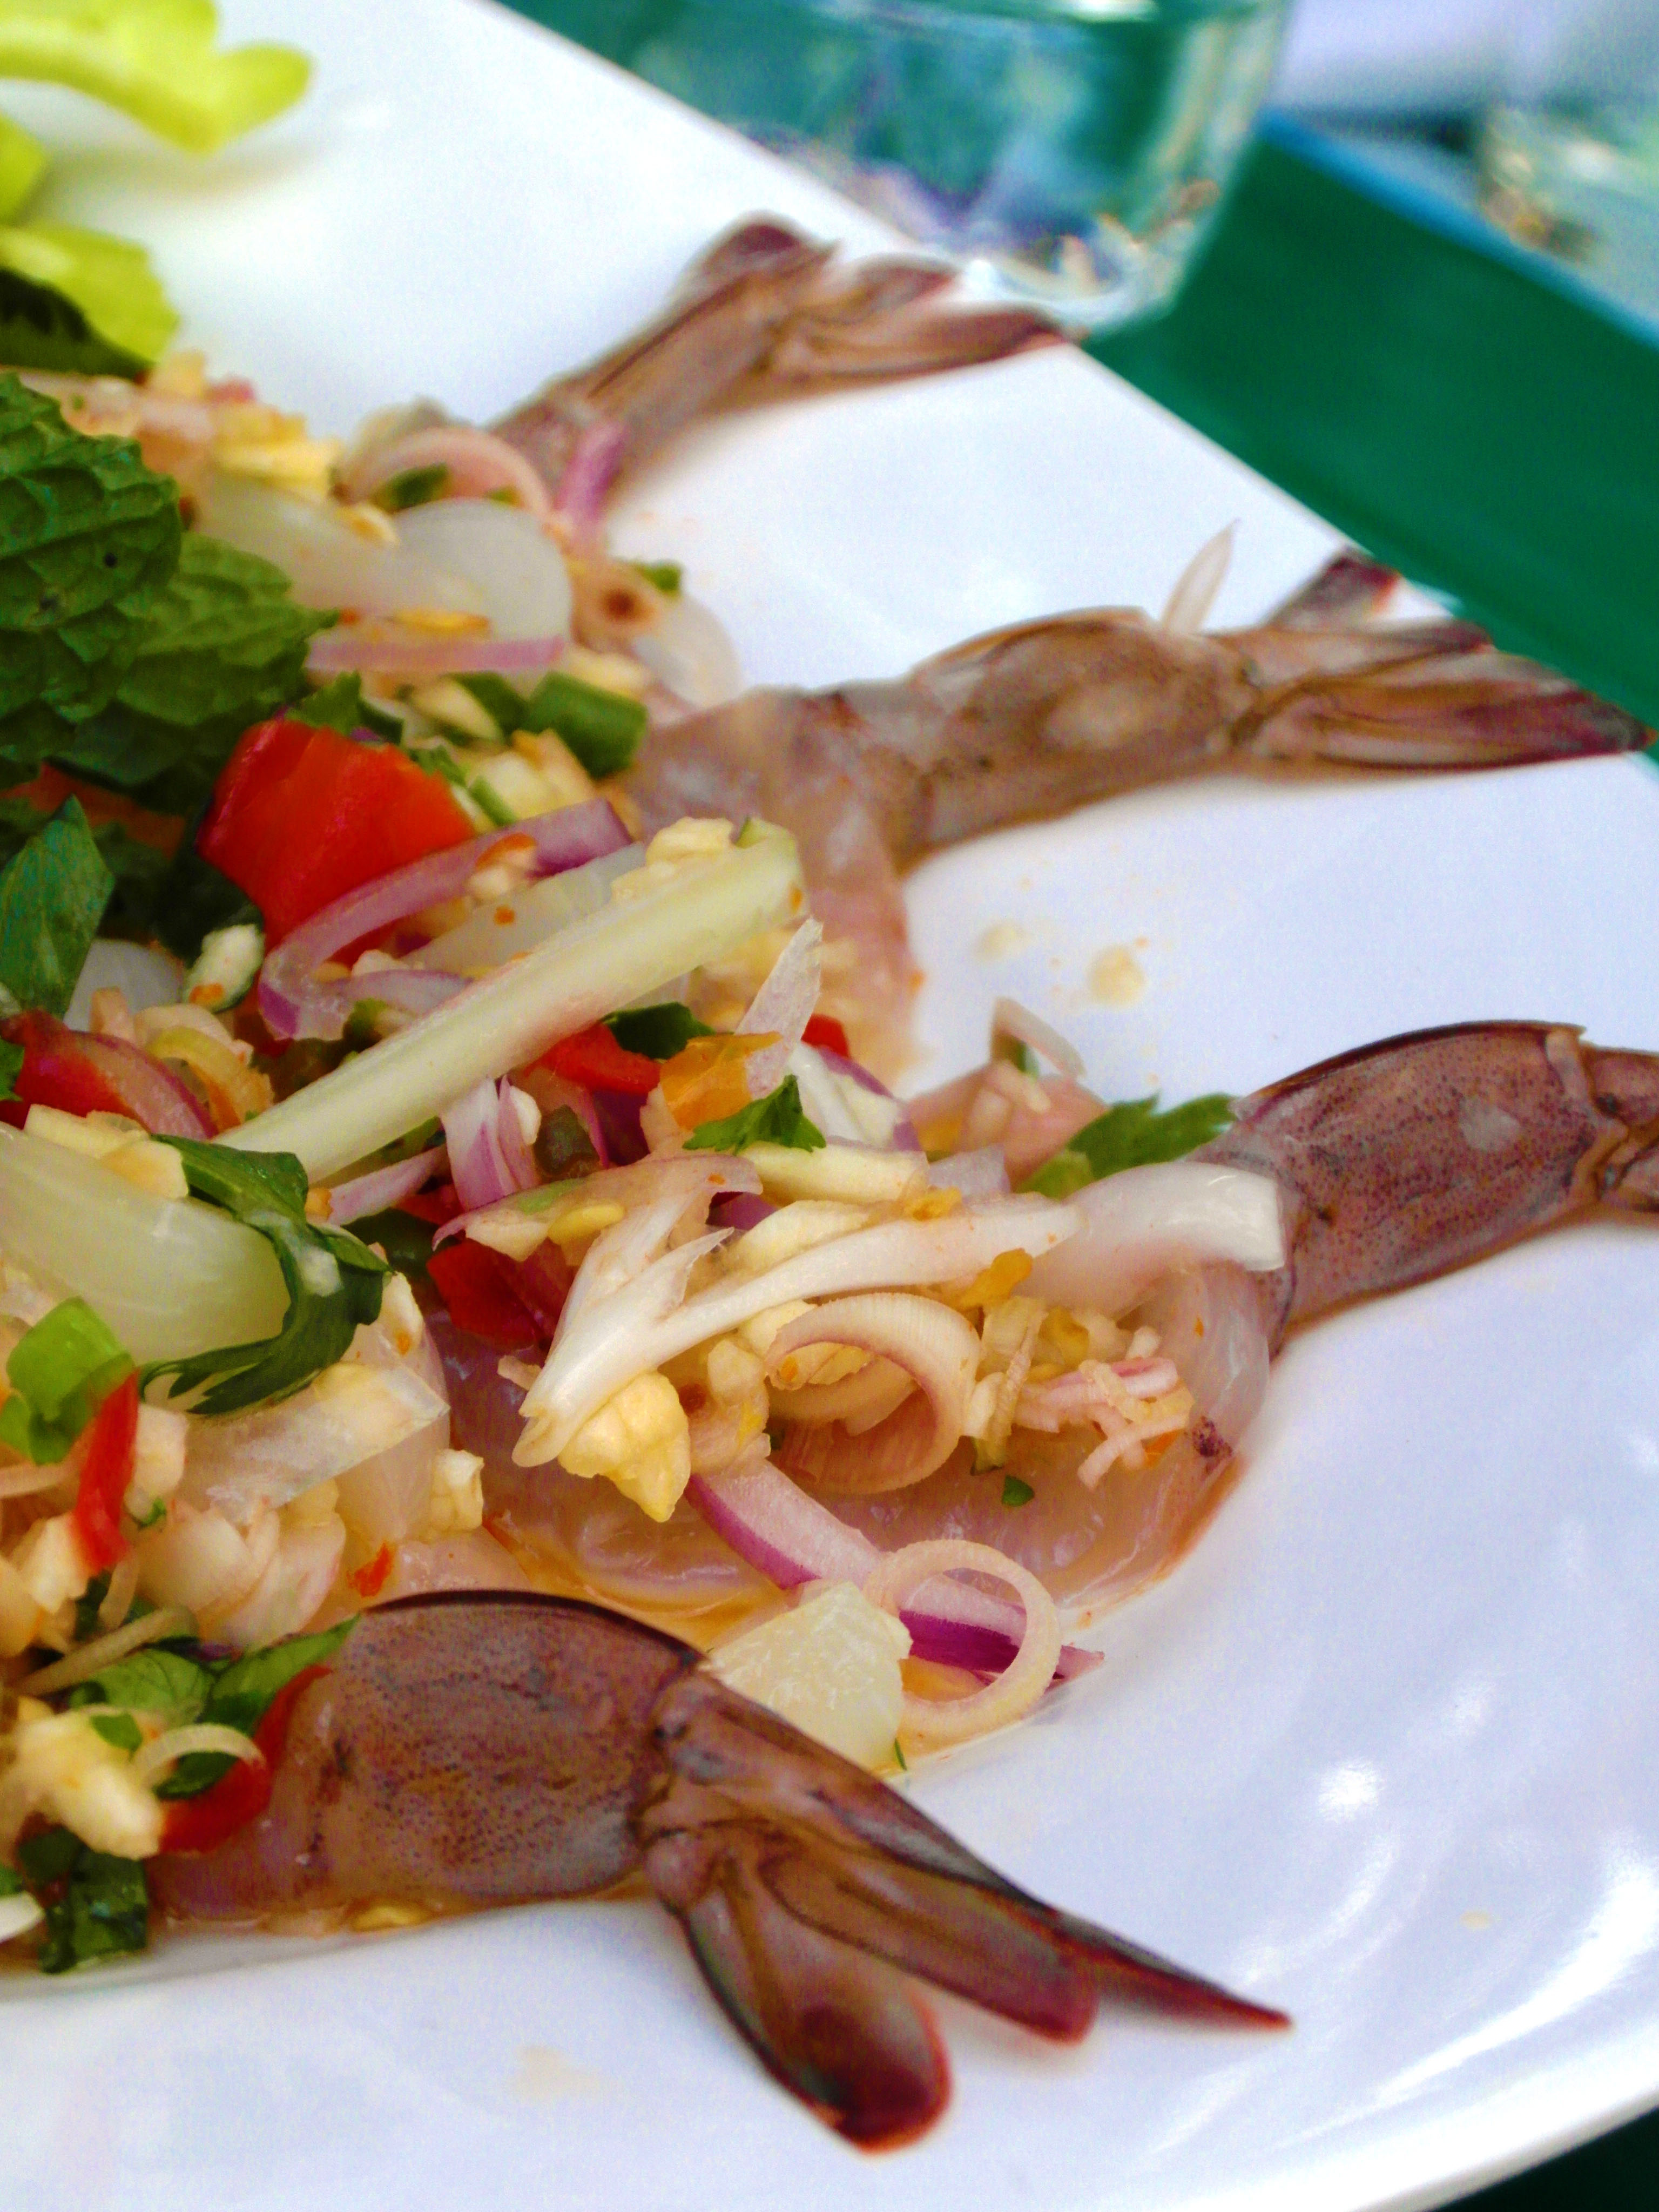 Spicy raw-prawn salad photo